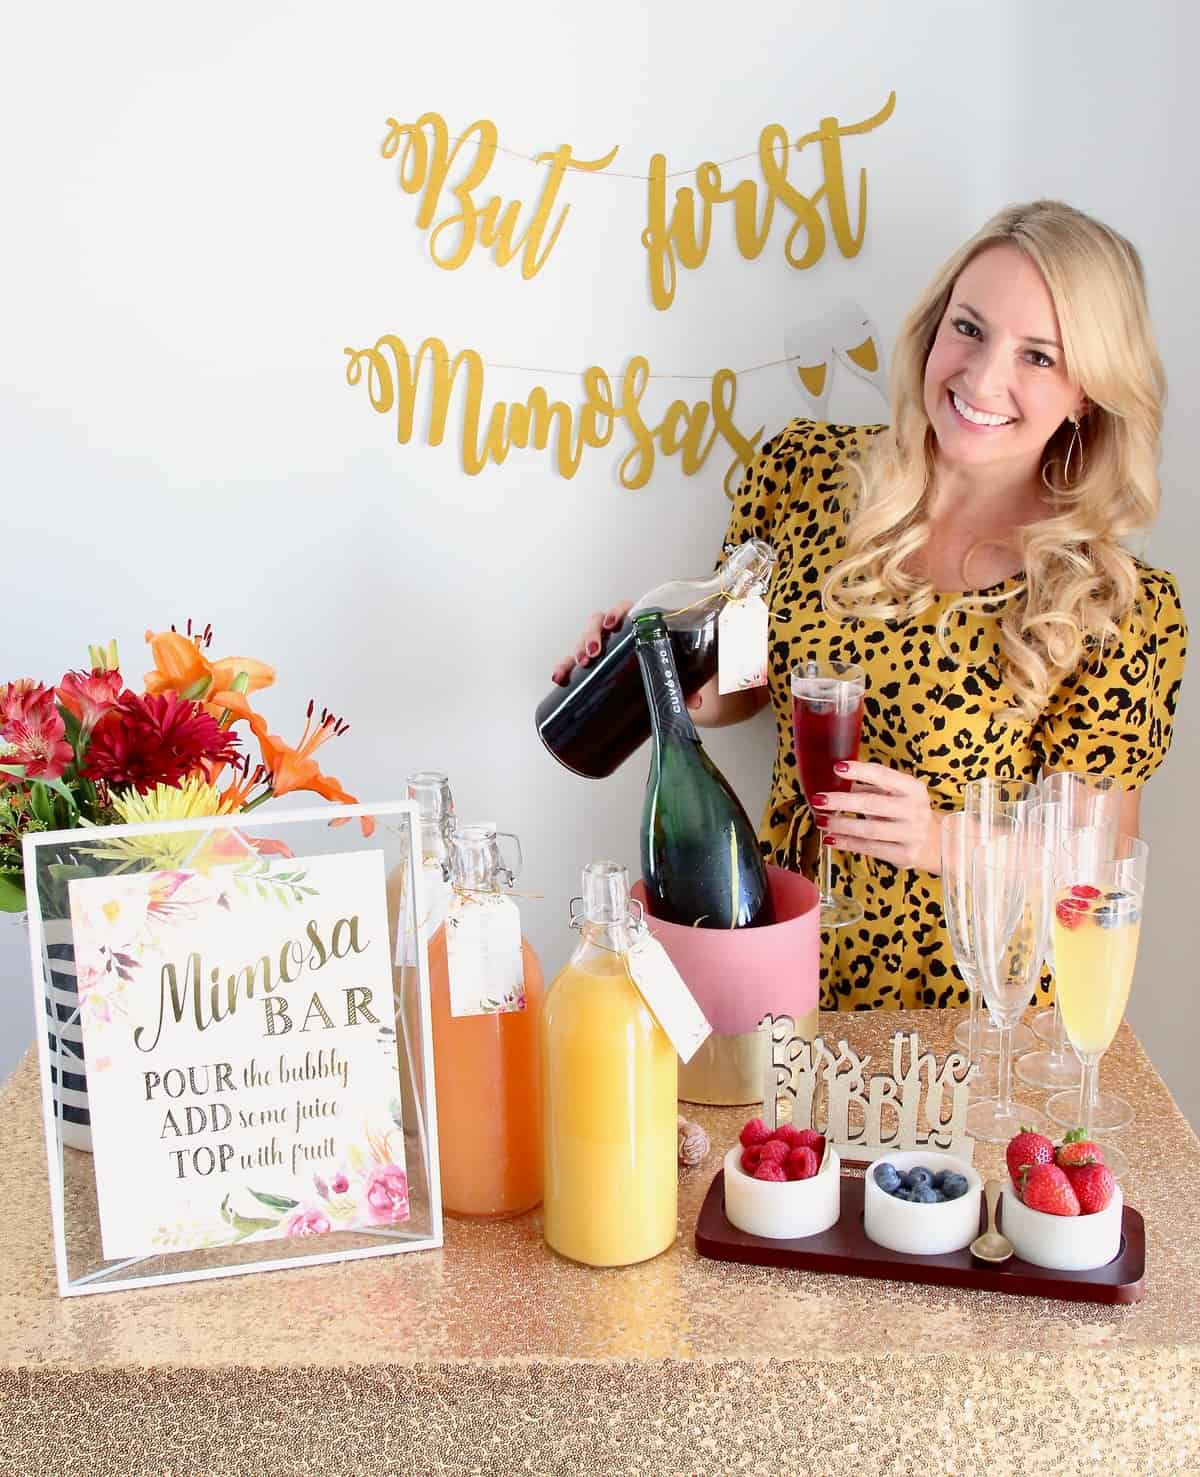 Woman pouring juice into a mimosa standing behind a mimosa bar